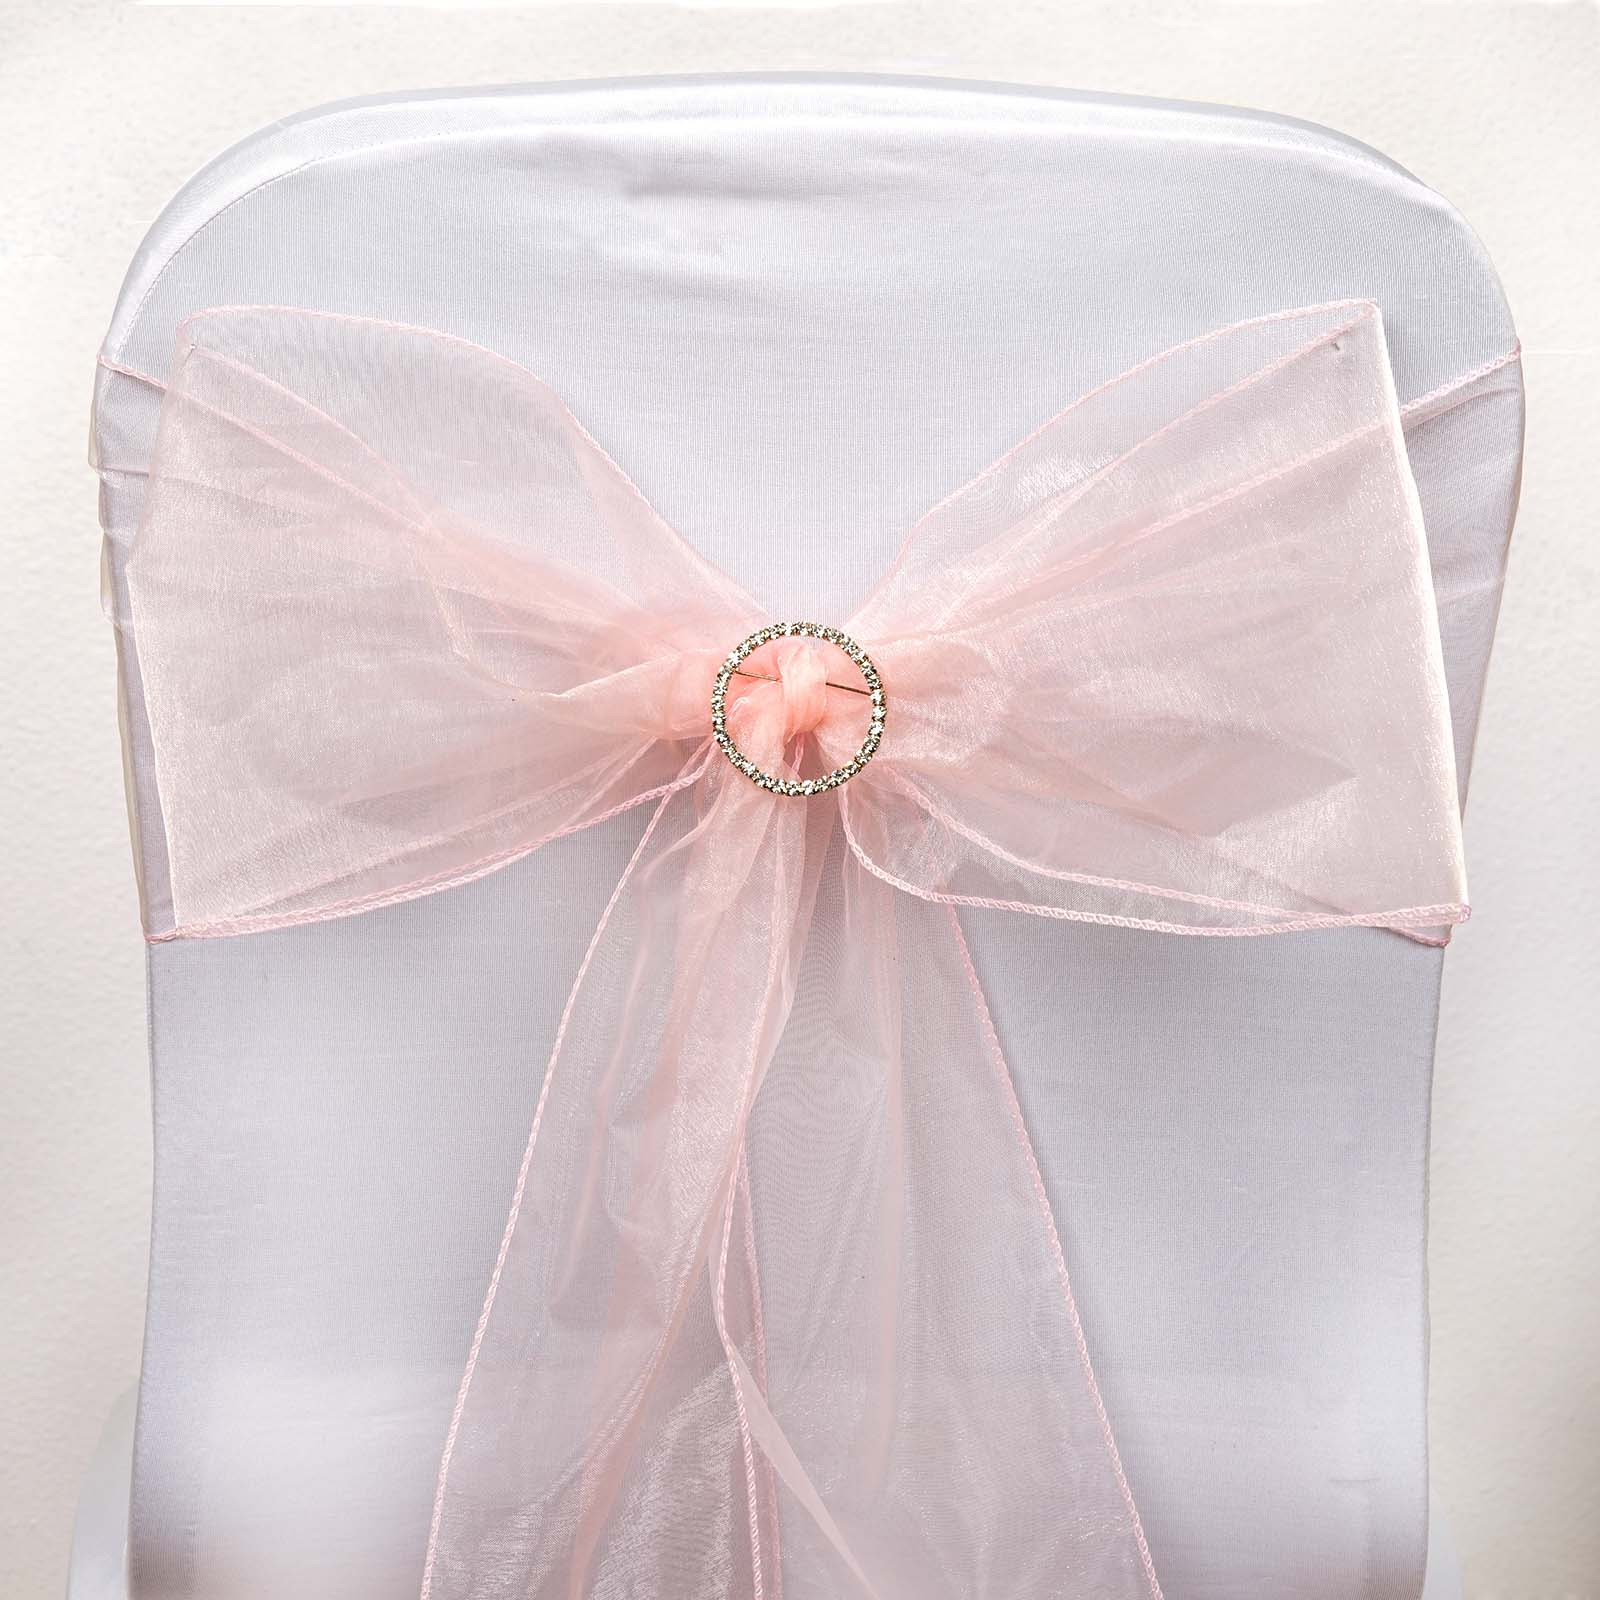 blush chair sashes recliner covers adelaide 5 pcs wholesale sheer organza tie bows